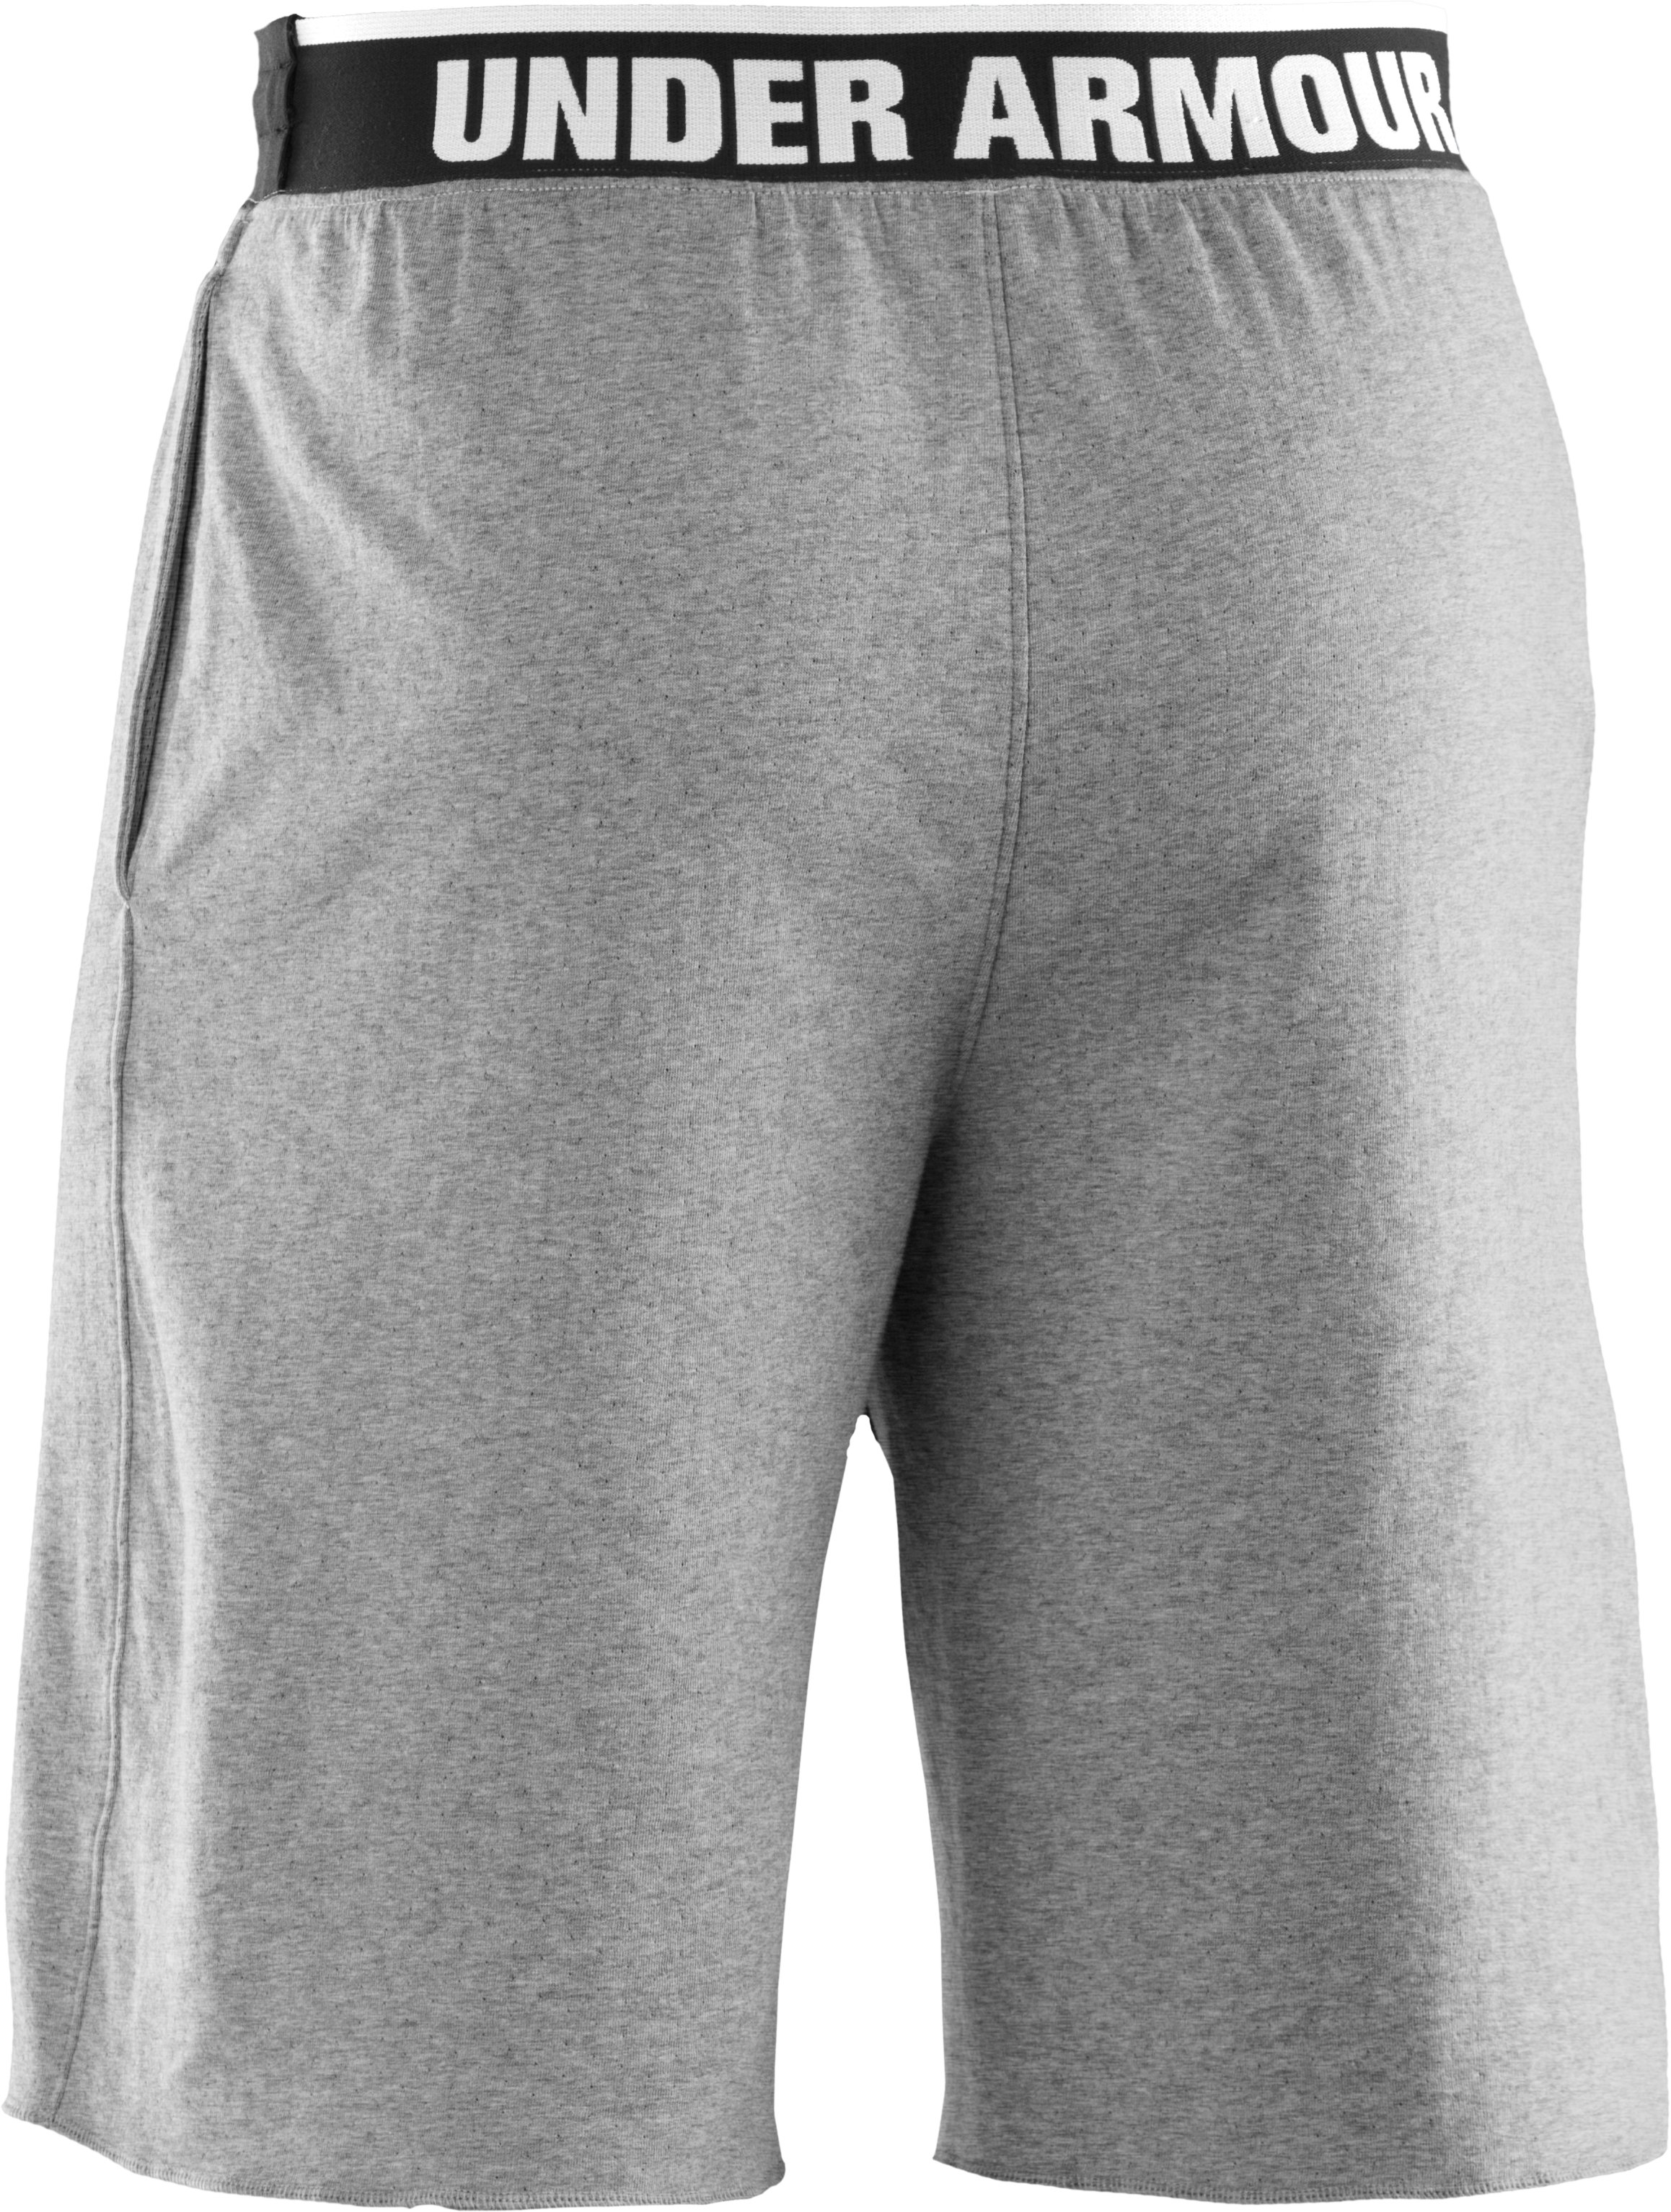 Men's Charged Cotton® Contender Shorts, True Gray Heather